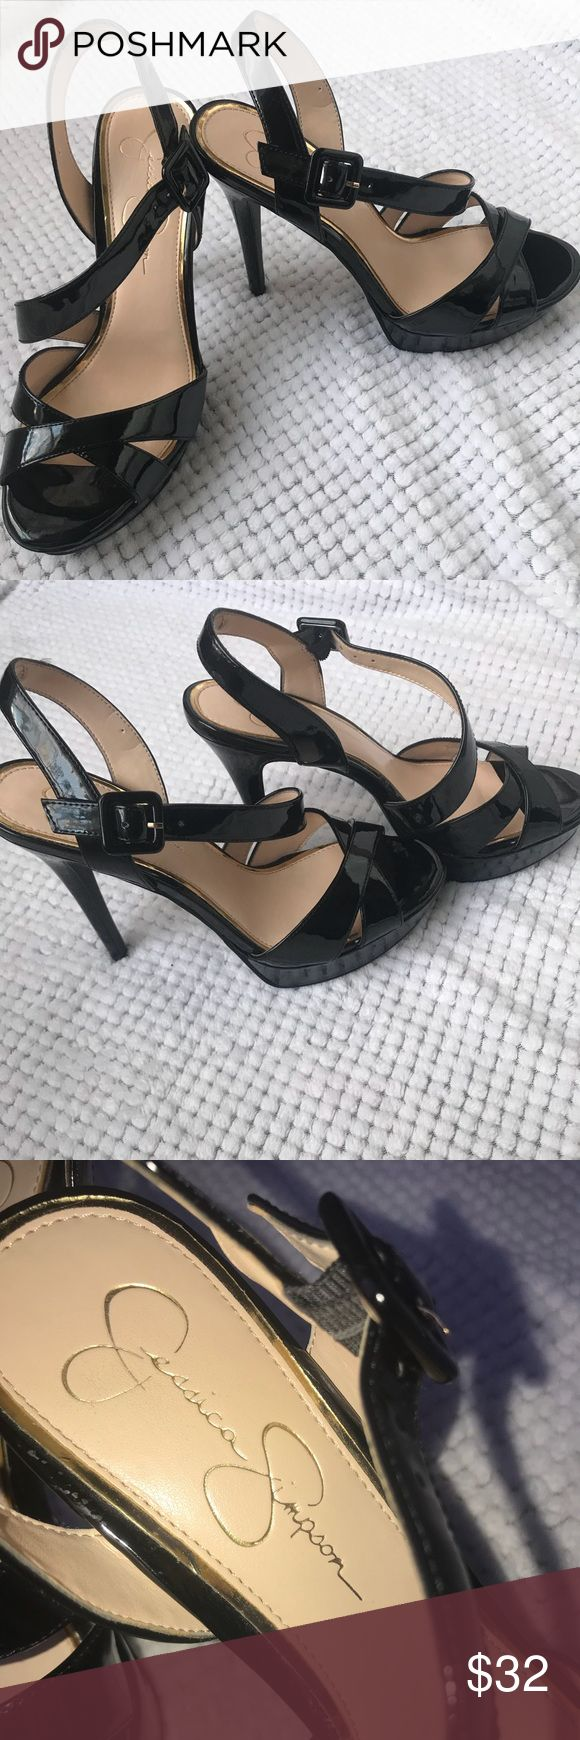 👠 Jessica Simpson black patent heels 👠 Jessica Simpson black patent adjustable sling back strap . Gently used . Some signs of wear on the heel  but not very noticeable . Still has plenty of life left . Peep toe style . Perfect for office or evening wear . Size 8.5 M FAST SHIPPER Jessica Simpson Shoes Heels